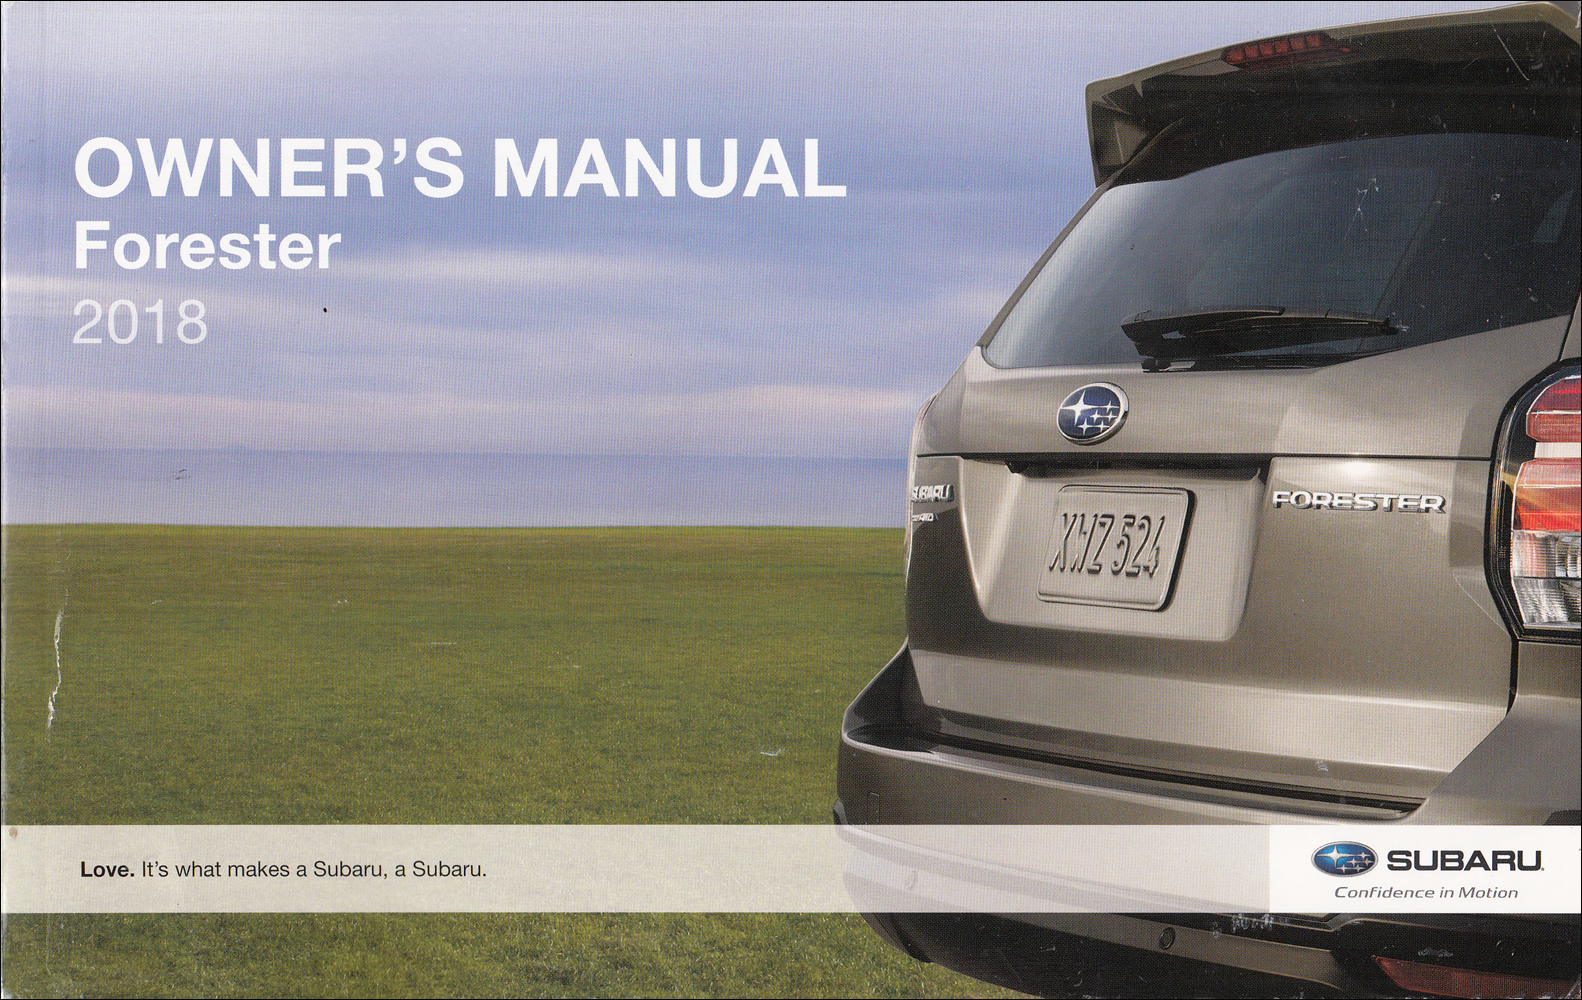 2018 Subaru Forester Owner's Manual Original